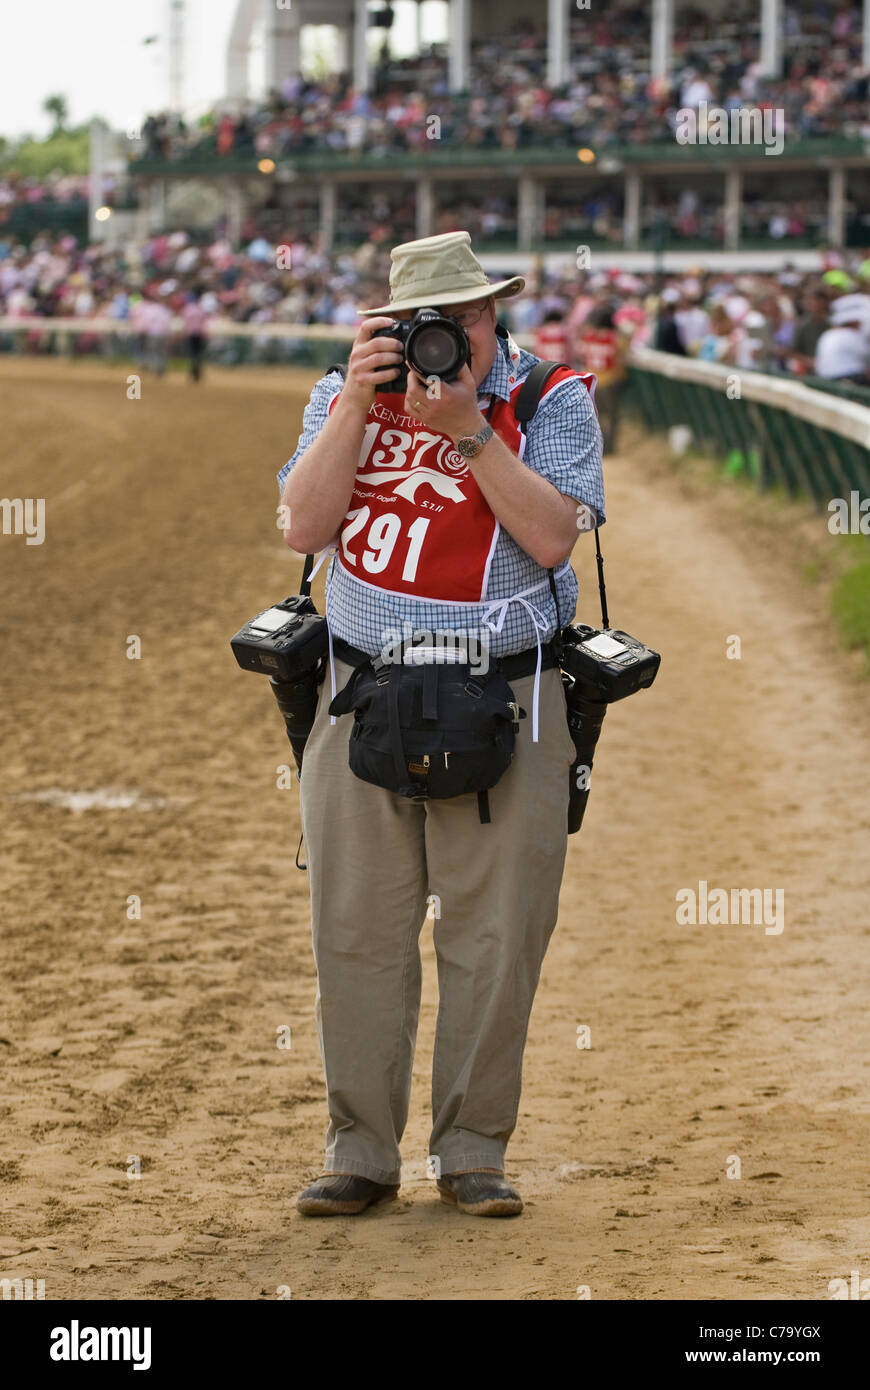 Professional Photographer Jonathan Roberts Shooting Photos on the Track at Churchill Downs in Louisville, Kentucky - Stock Image